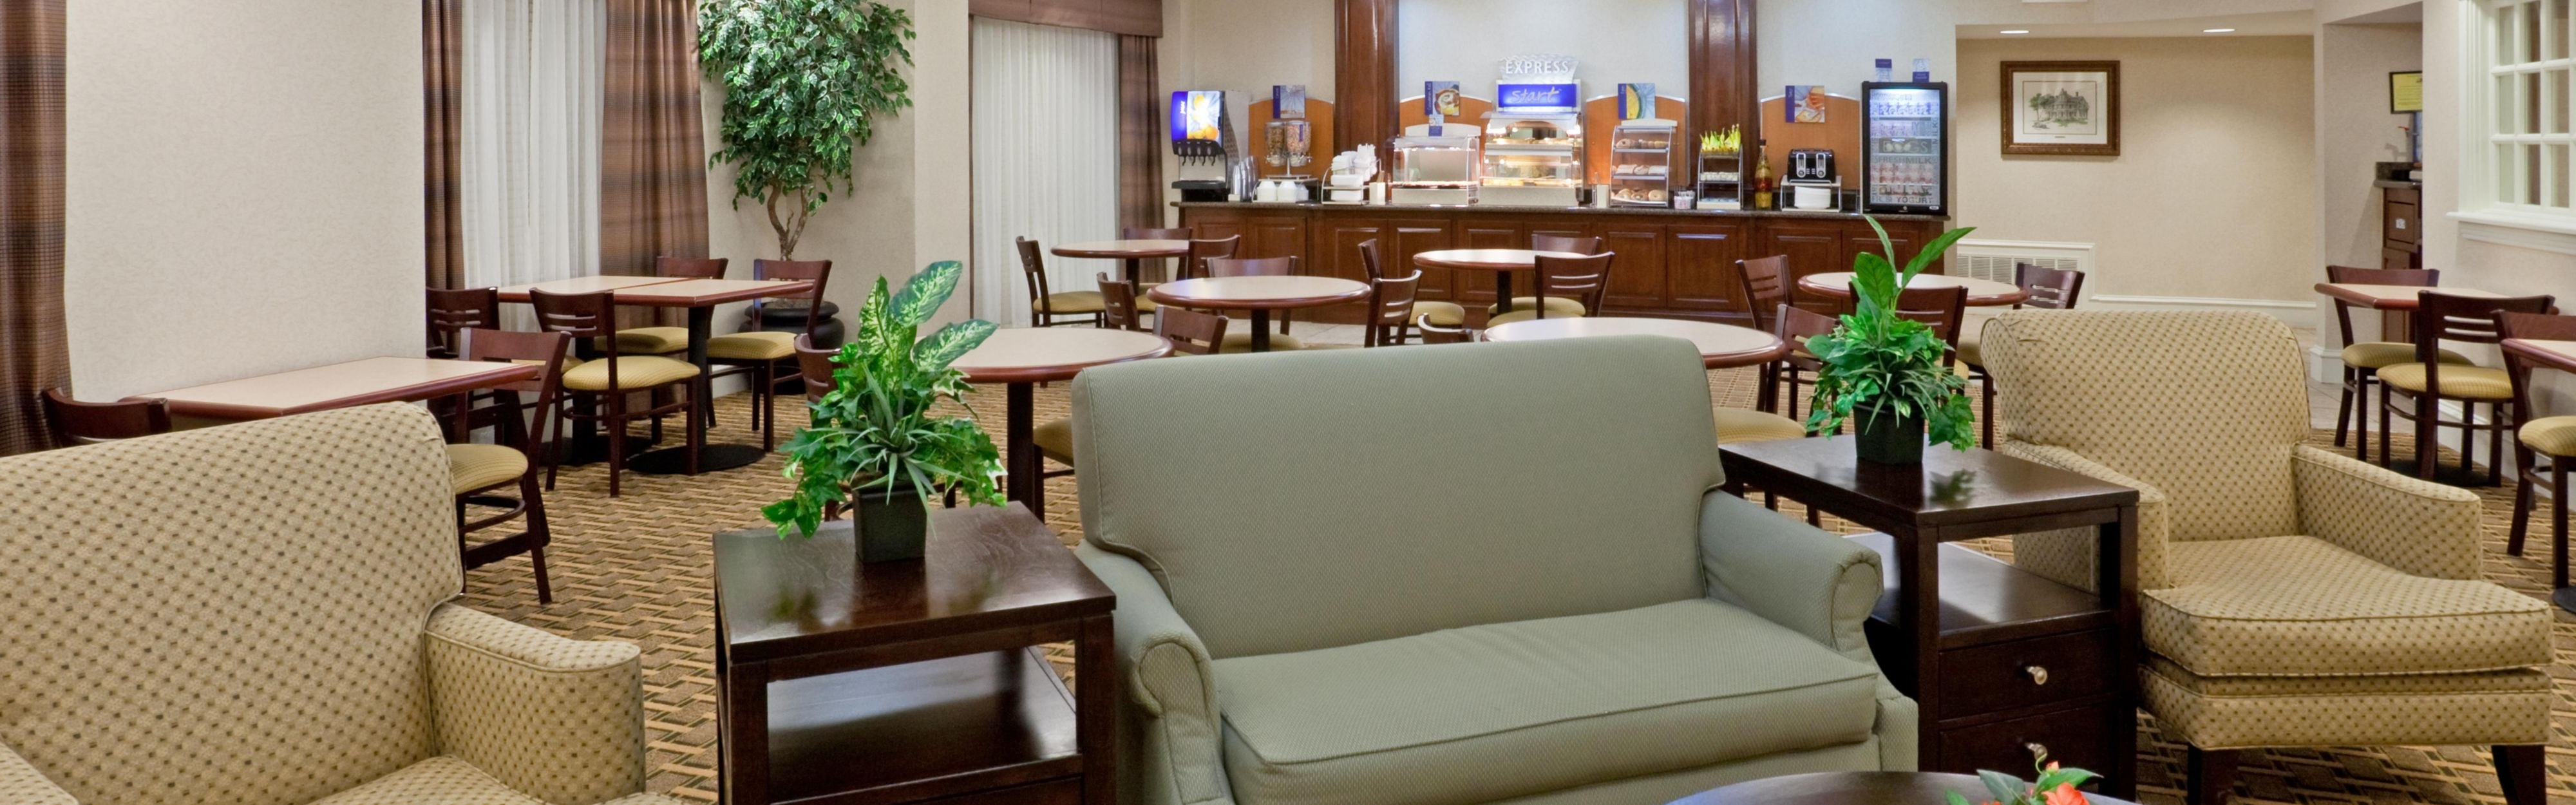 Holiday Inn Express & Suites Waxahachie image 3